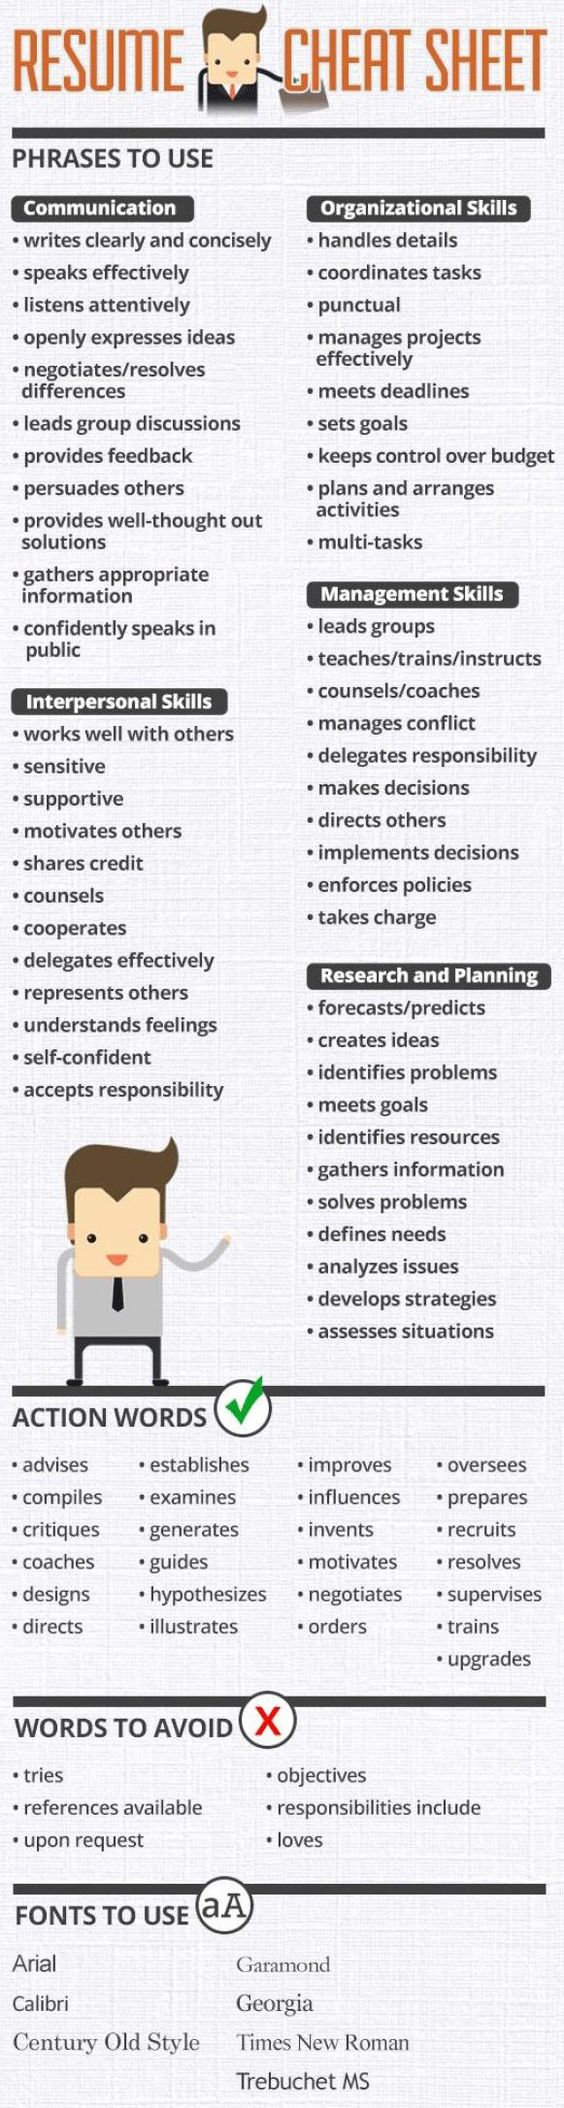 writing the only resume cheat sheet you will ever need is putting your resume together making you question if you should apply for a job